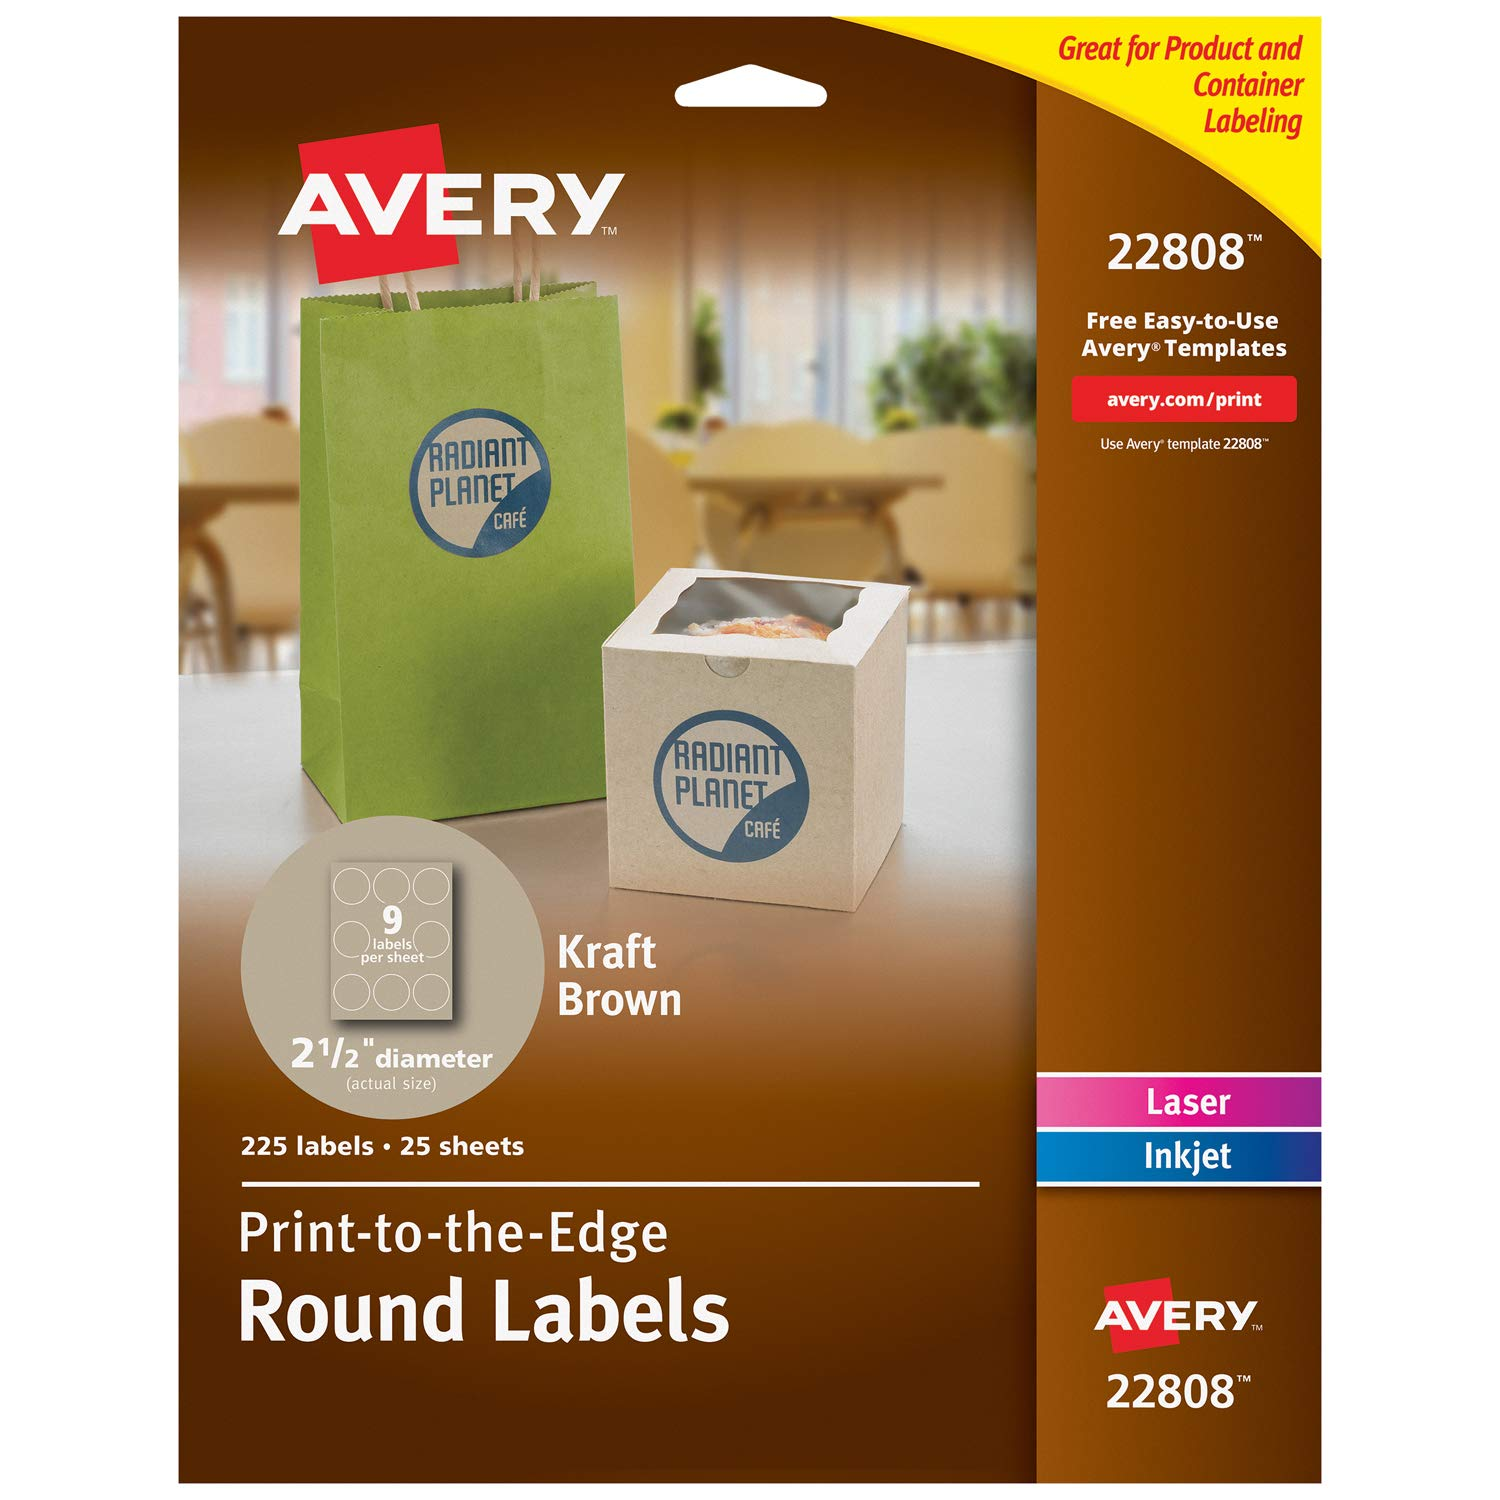 "Avery Round Labels for Laser & Inkjet Printers, 2.5"", 225 Kraft Brown Labels (22808)"